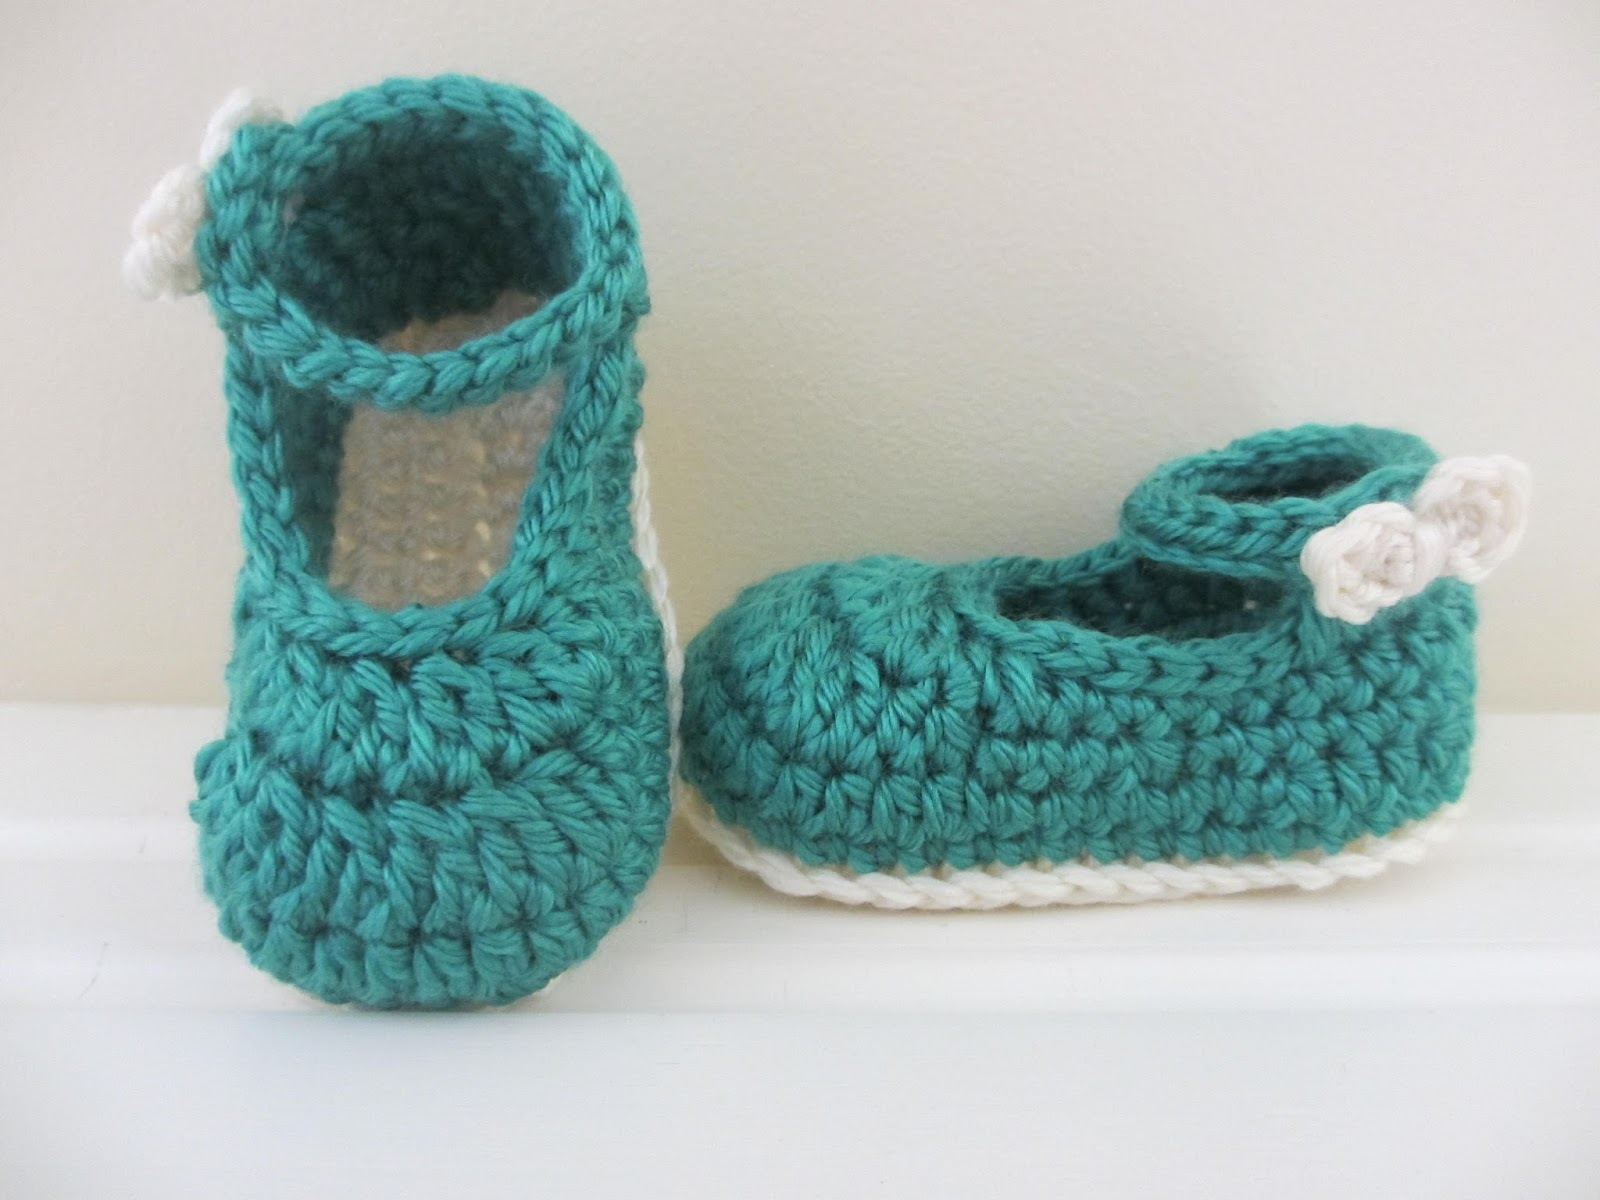 Crochet Pattern For A Baby Jacket : Jays Boutique Blog: FREE PATTERN: Bow Buckle Mary Janes